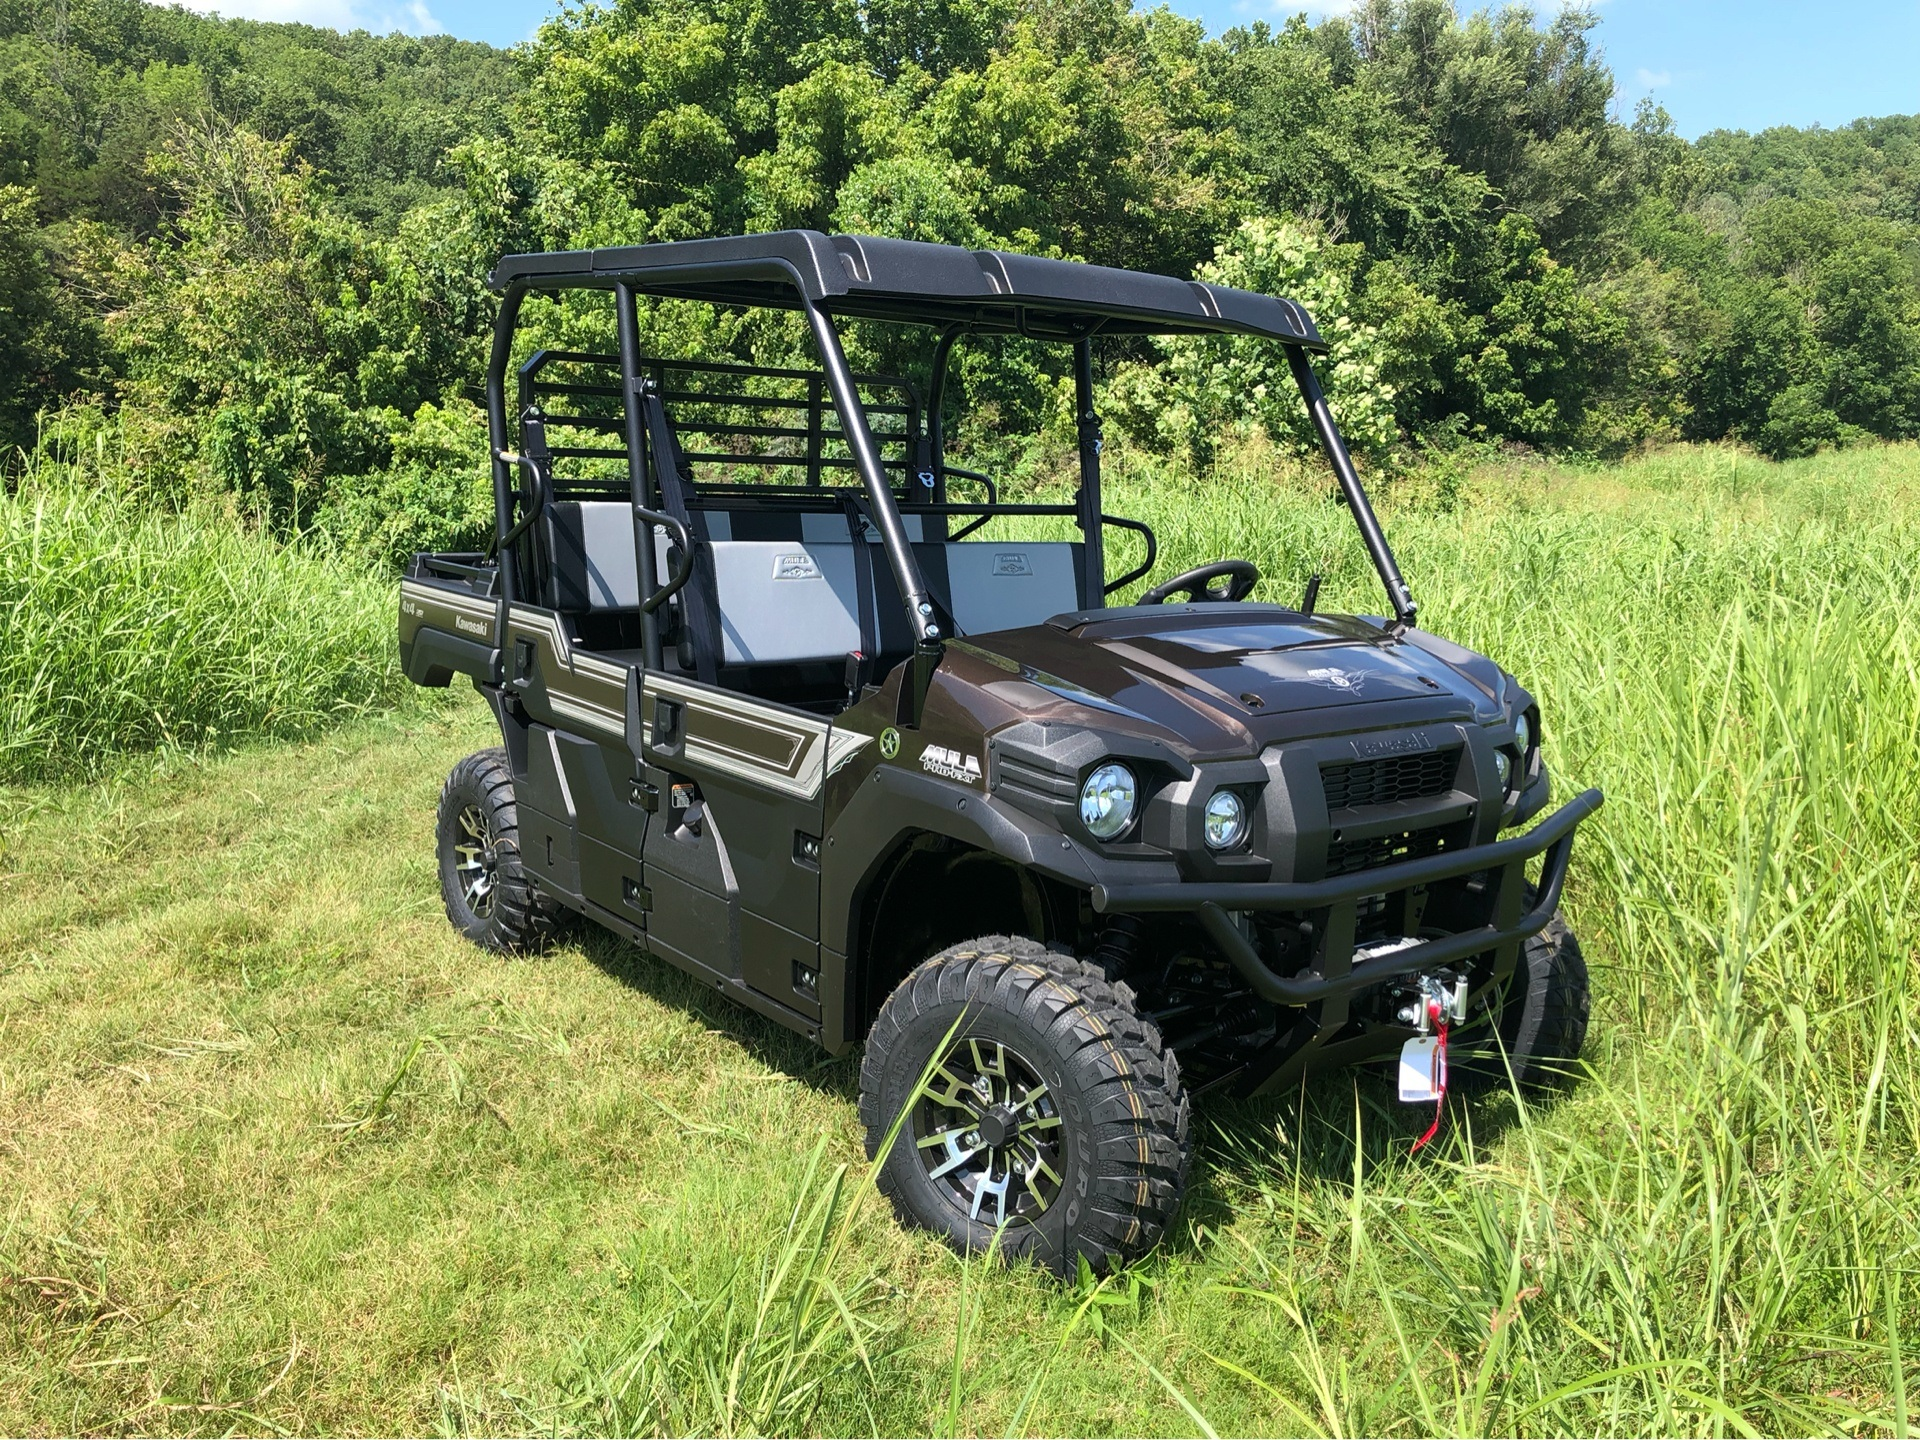 2020 Kawasaki Mule PRO-FXT Ranch Edition for sale 158649